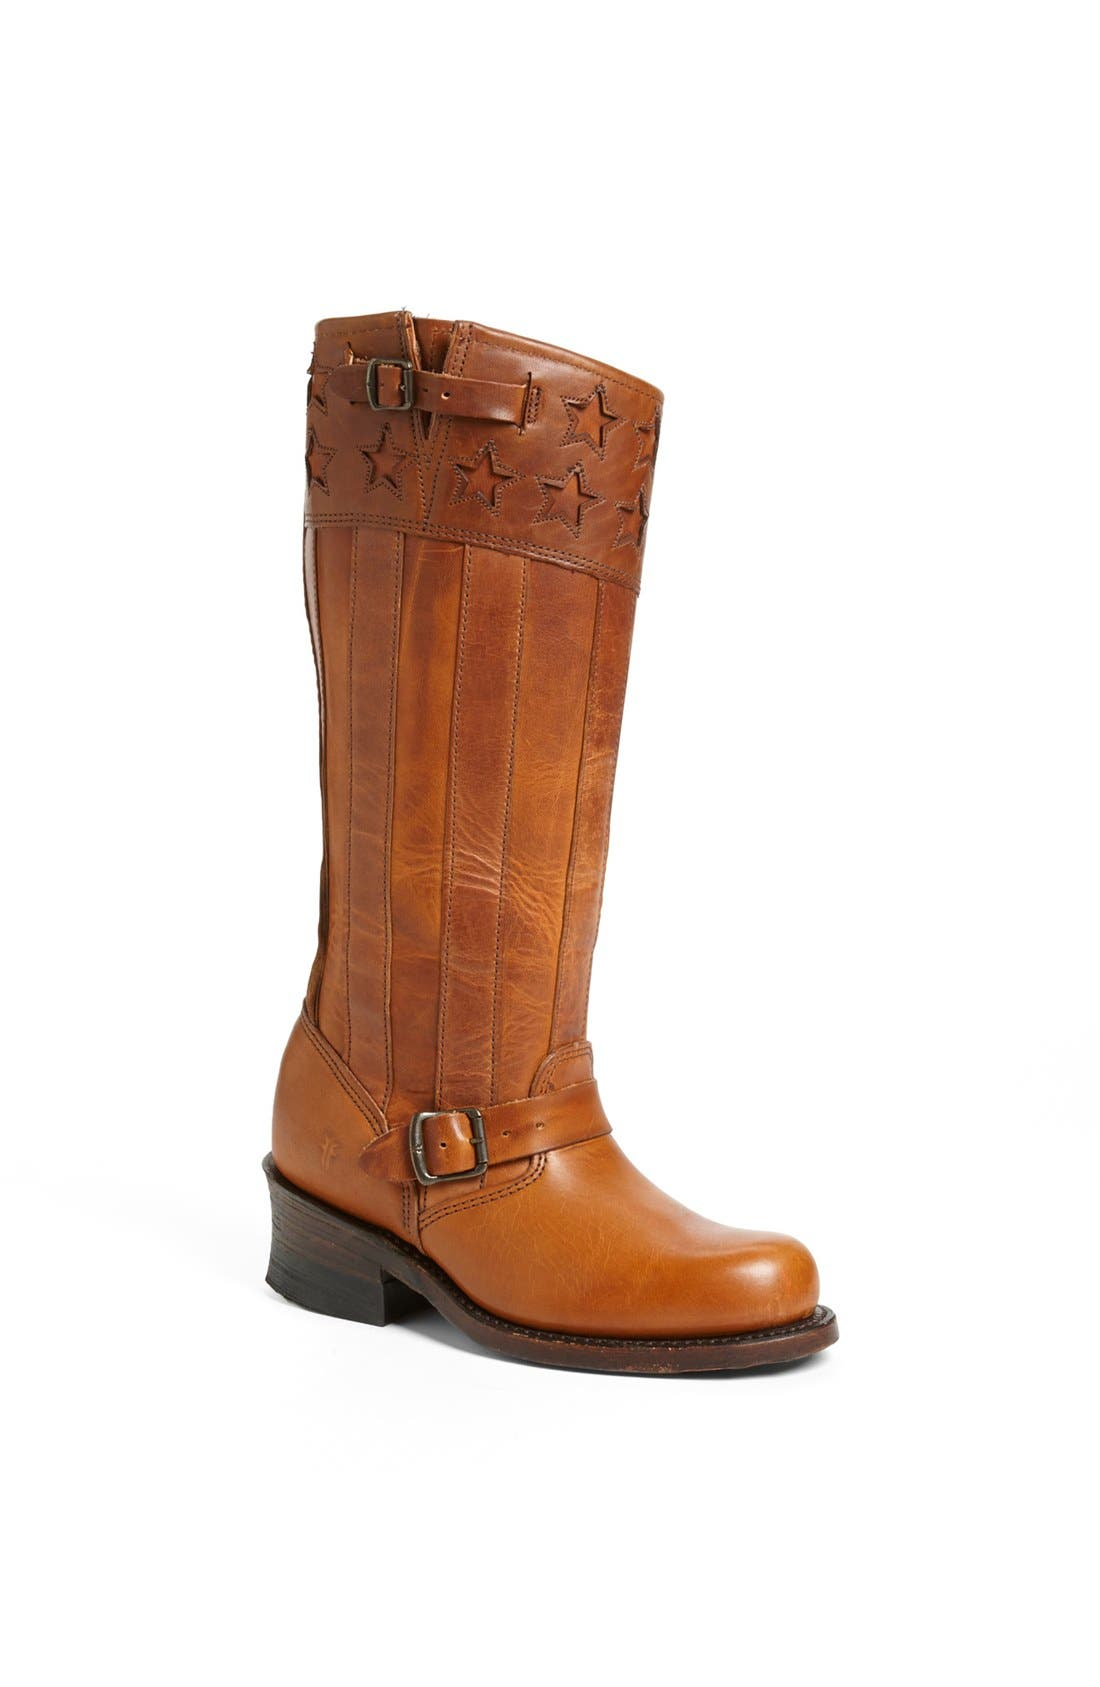 Alternate Image 1 Selected - Frye Americana Engineer Boot (Limited Edition)